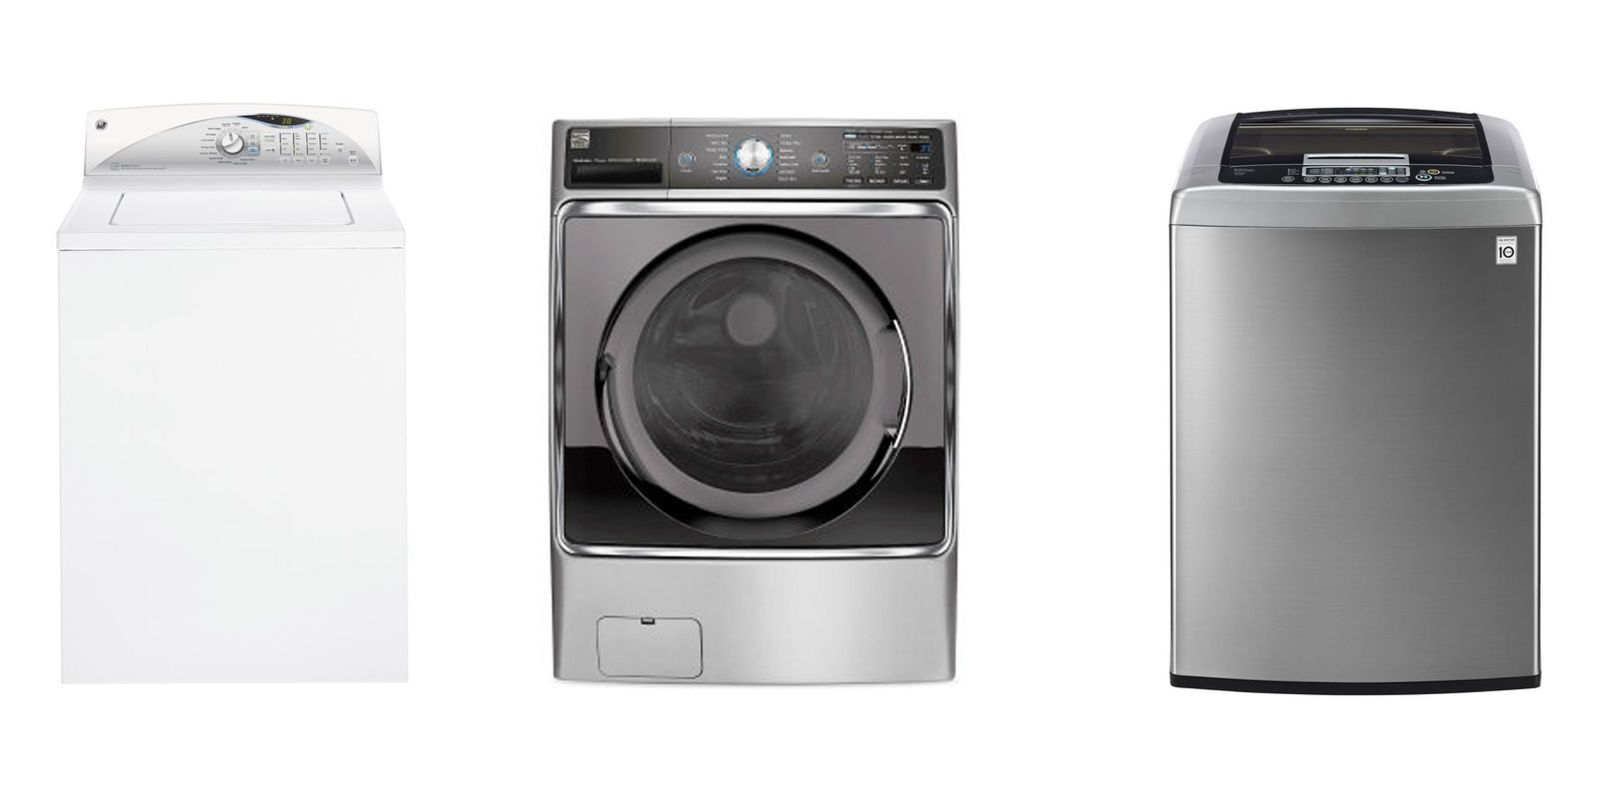 Pin On Major Appliance Reviews